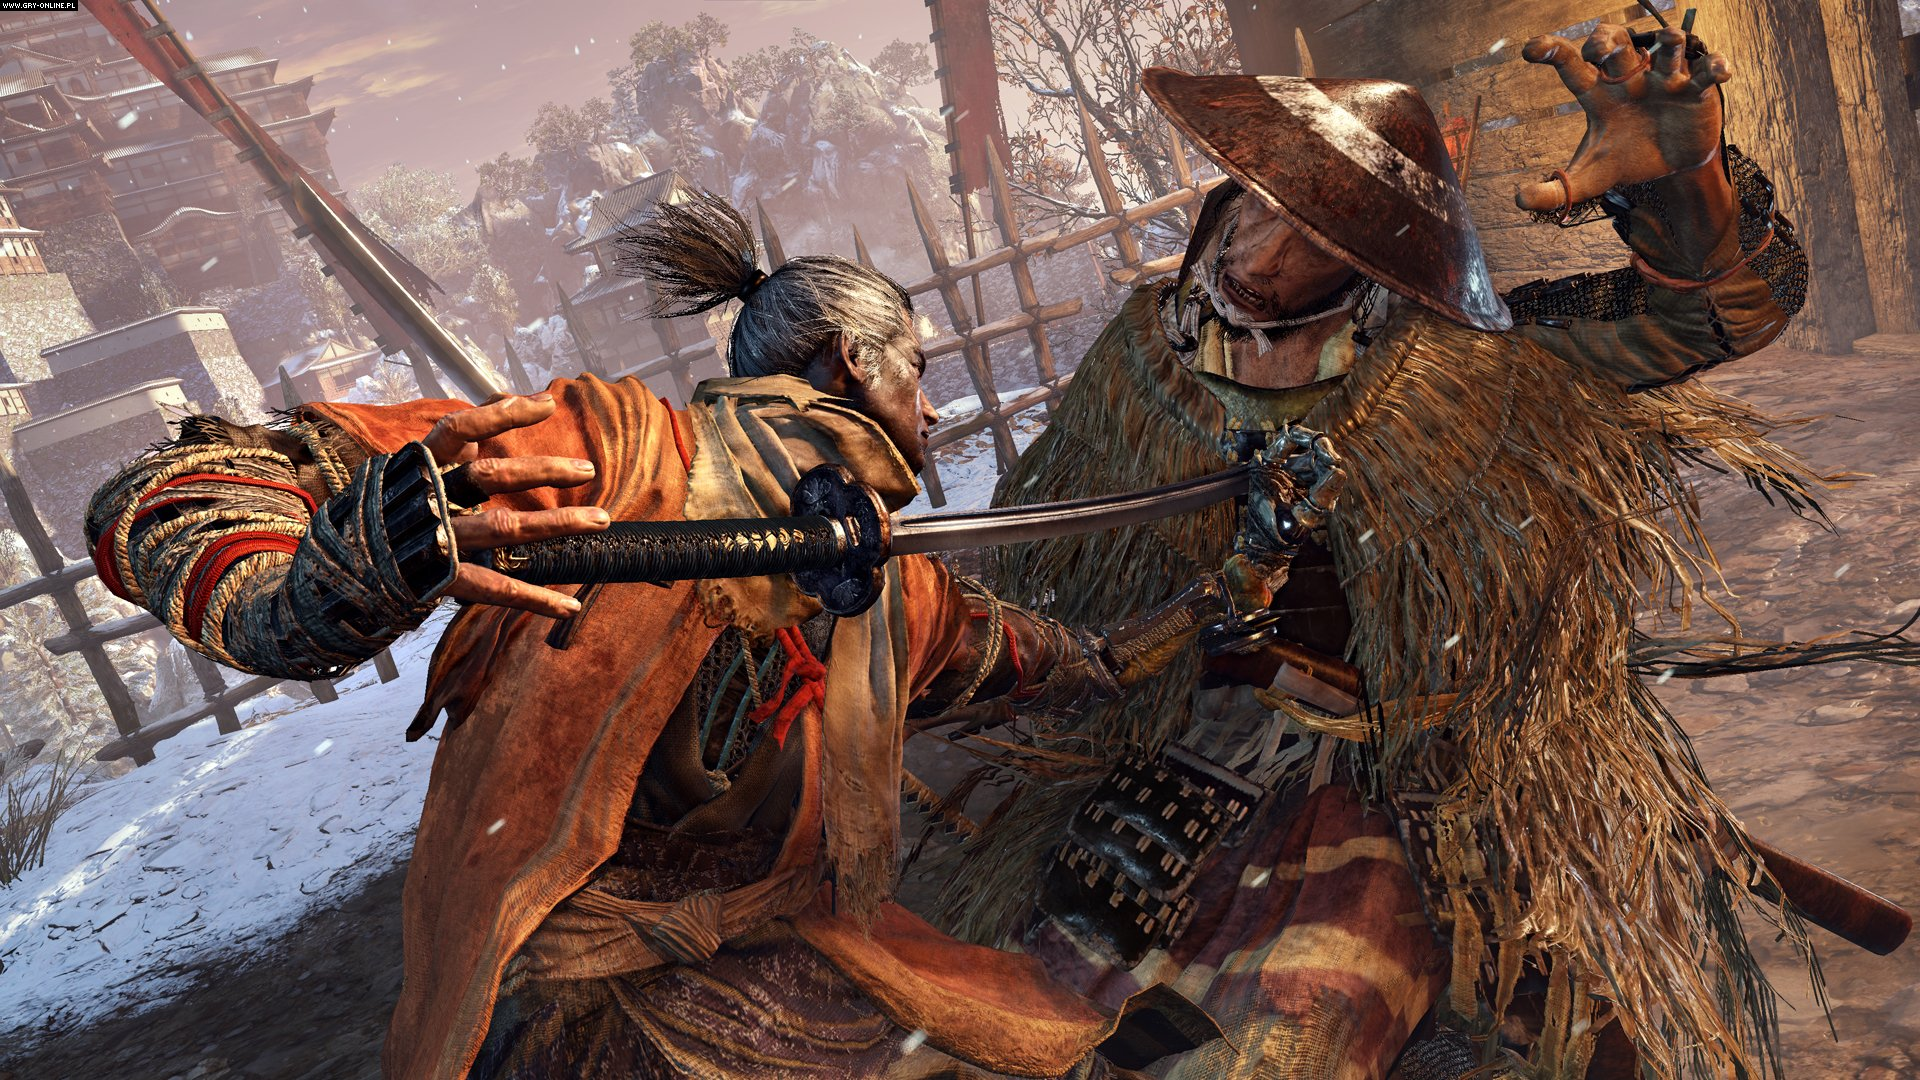 Sekiro: Shadows Die Twice PS4, XONE, PC Games Image 28/29, FromSoftware, Activision Blizzard